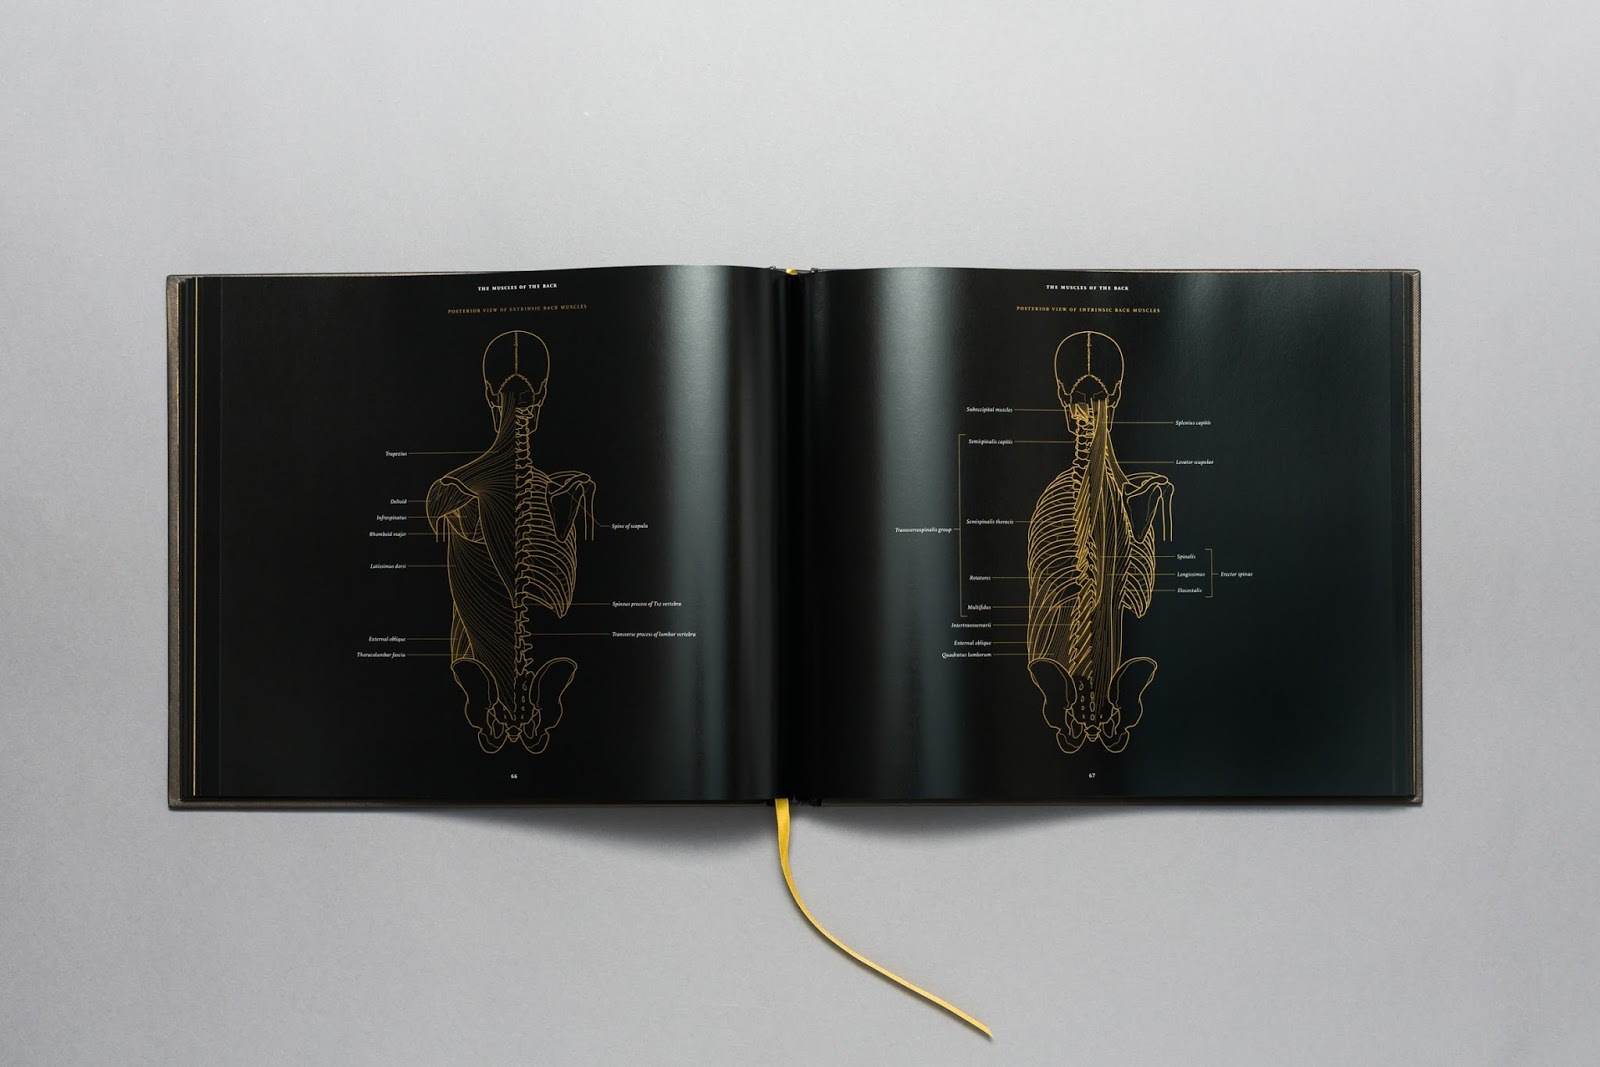 http://morbidanatomy.bigcartel.com/product/anatomy-in-black-by-emily-evans-preorder